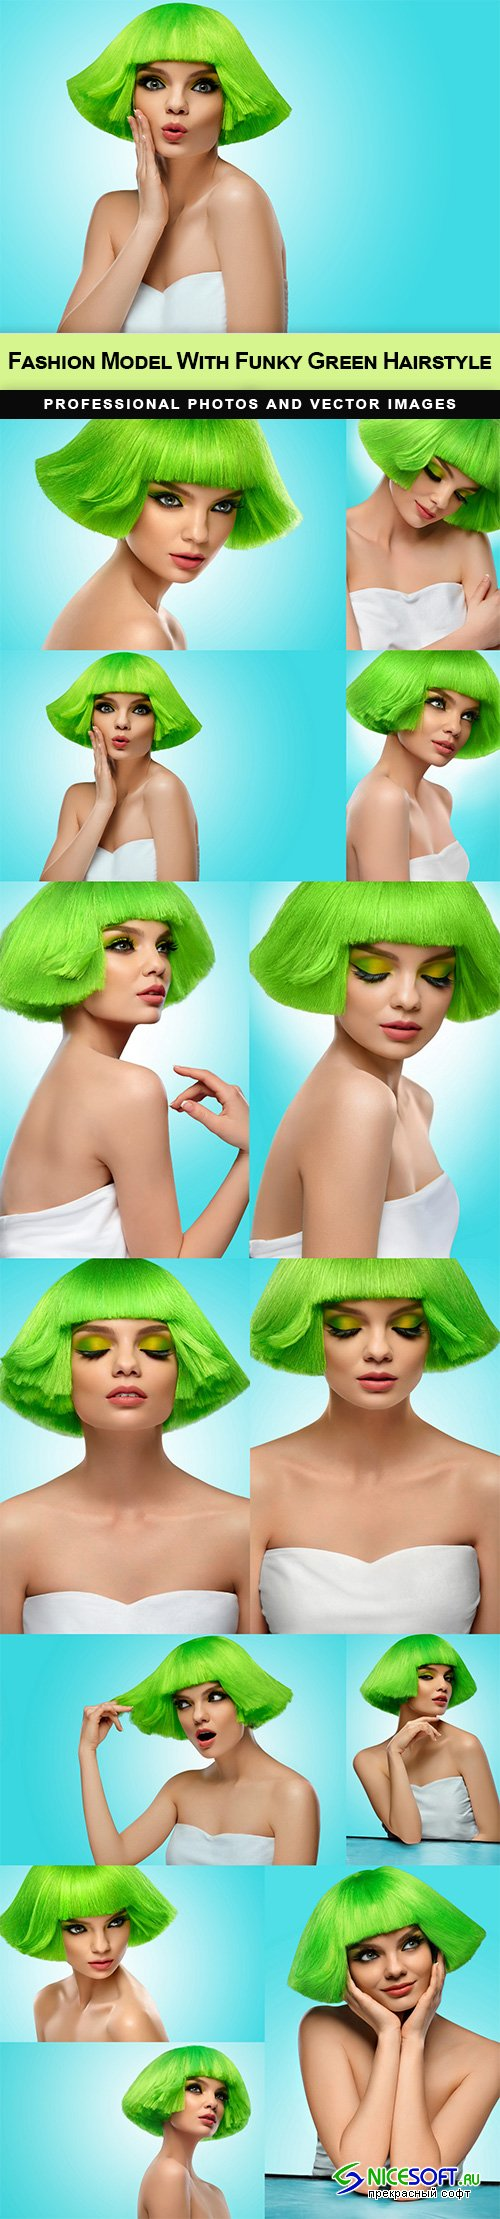 Fashion Model With Funky Green Hairstyle